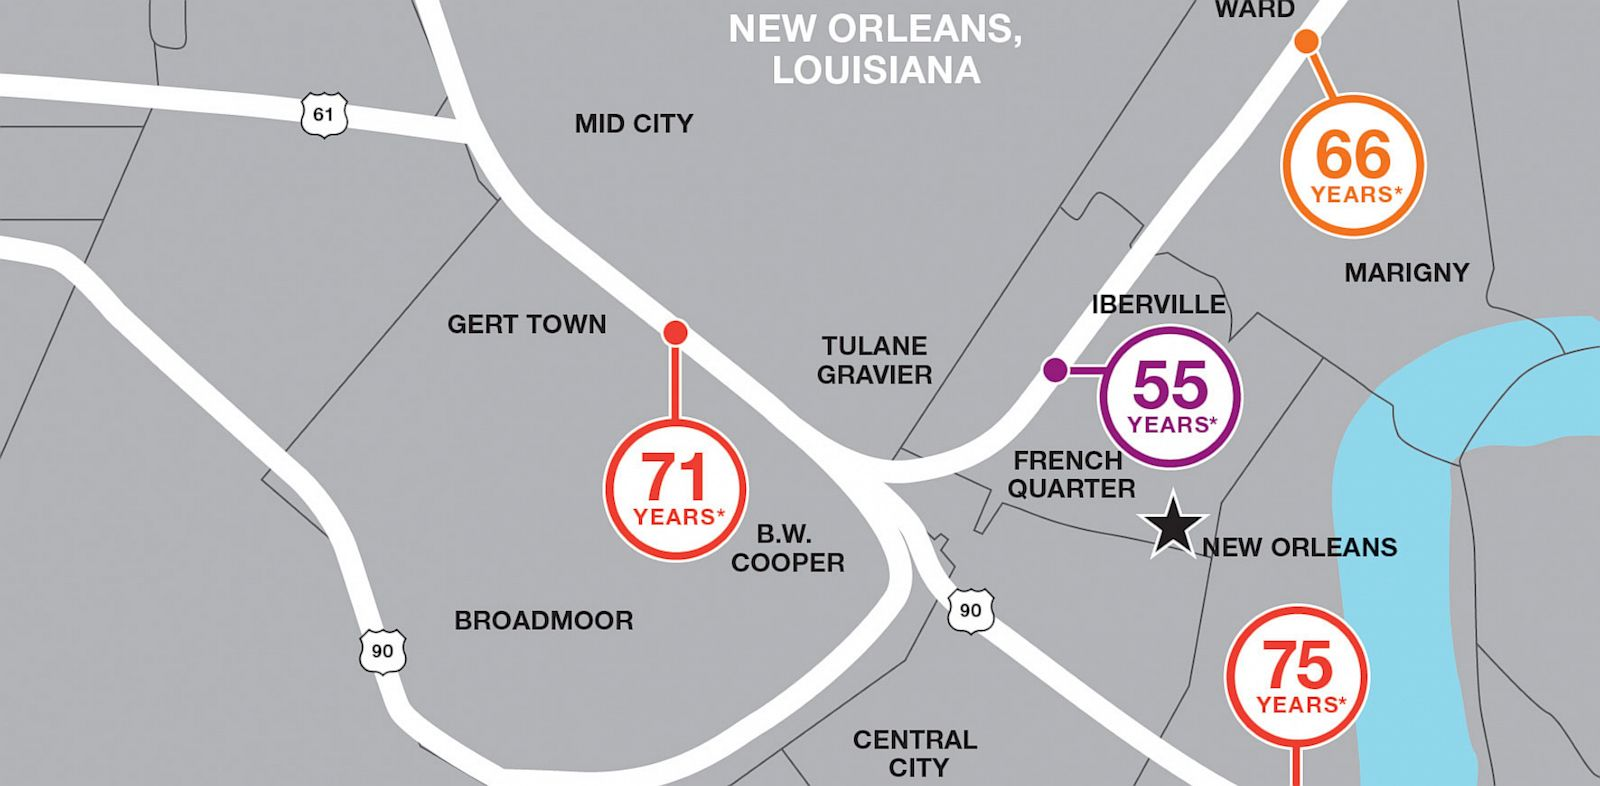 PHOTO: Different neighborhoods in New Orleans had some of the most dramatic differences in life expectancy.